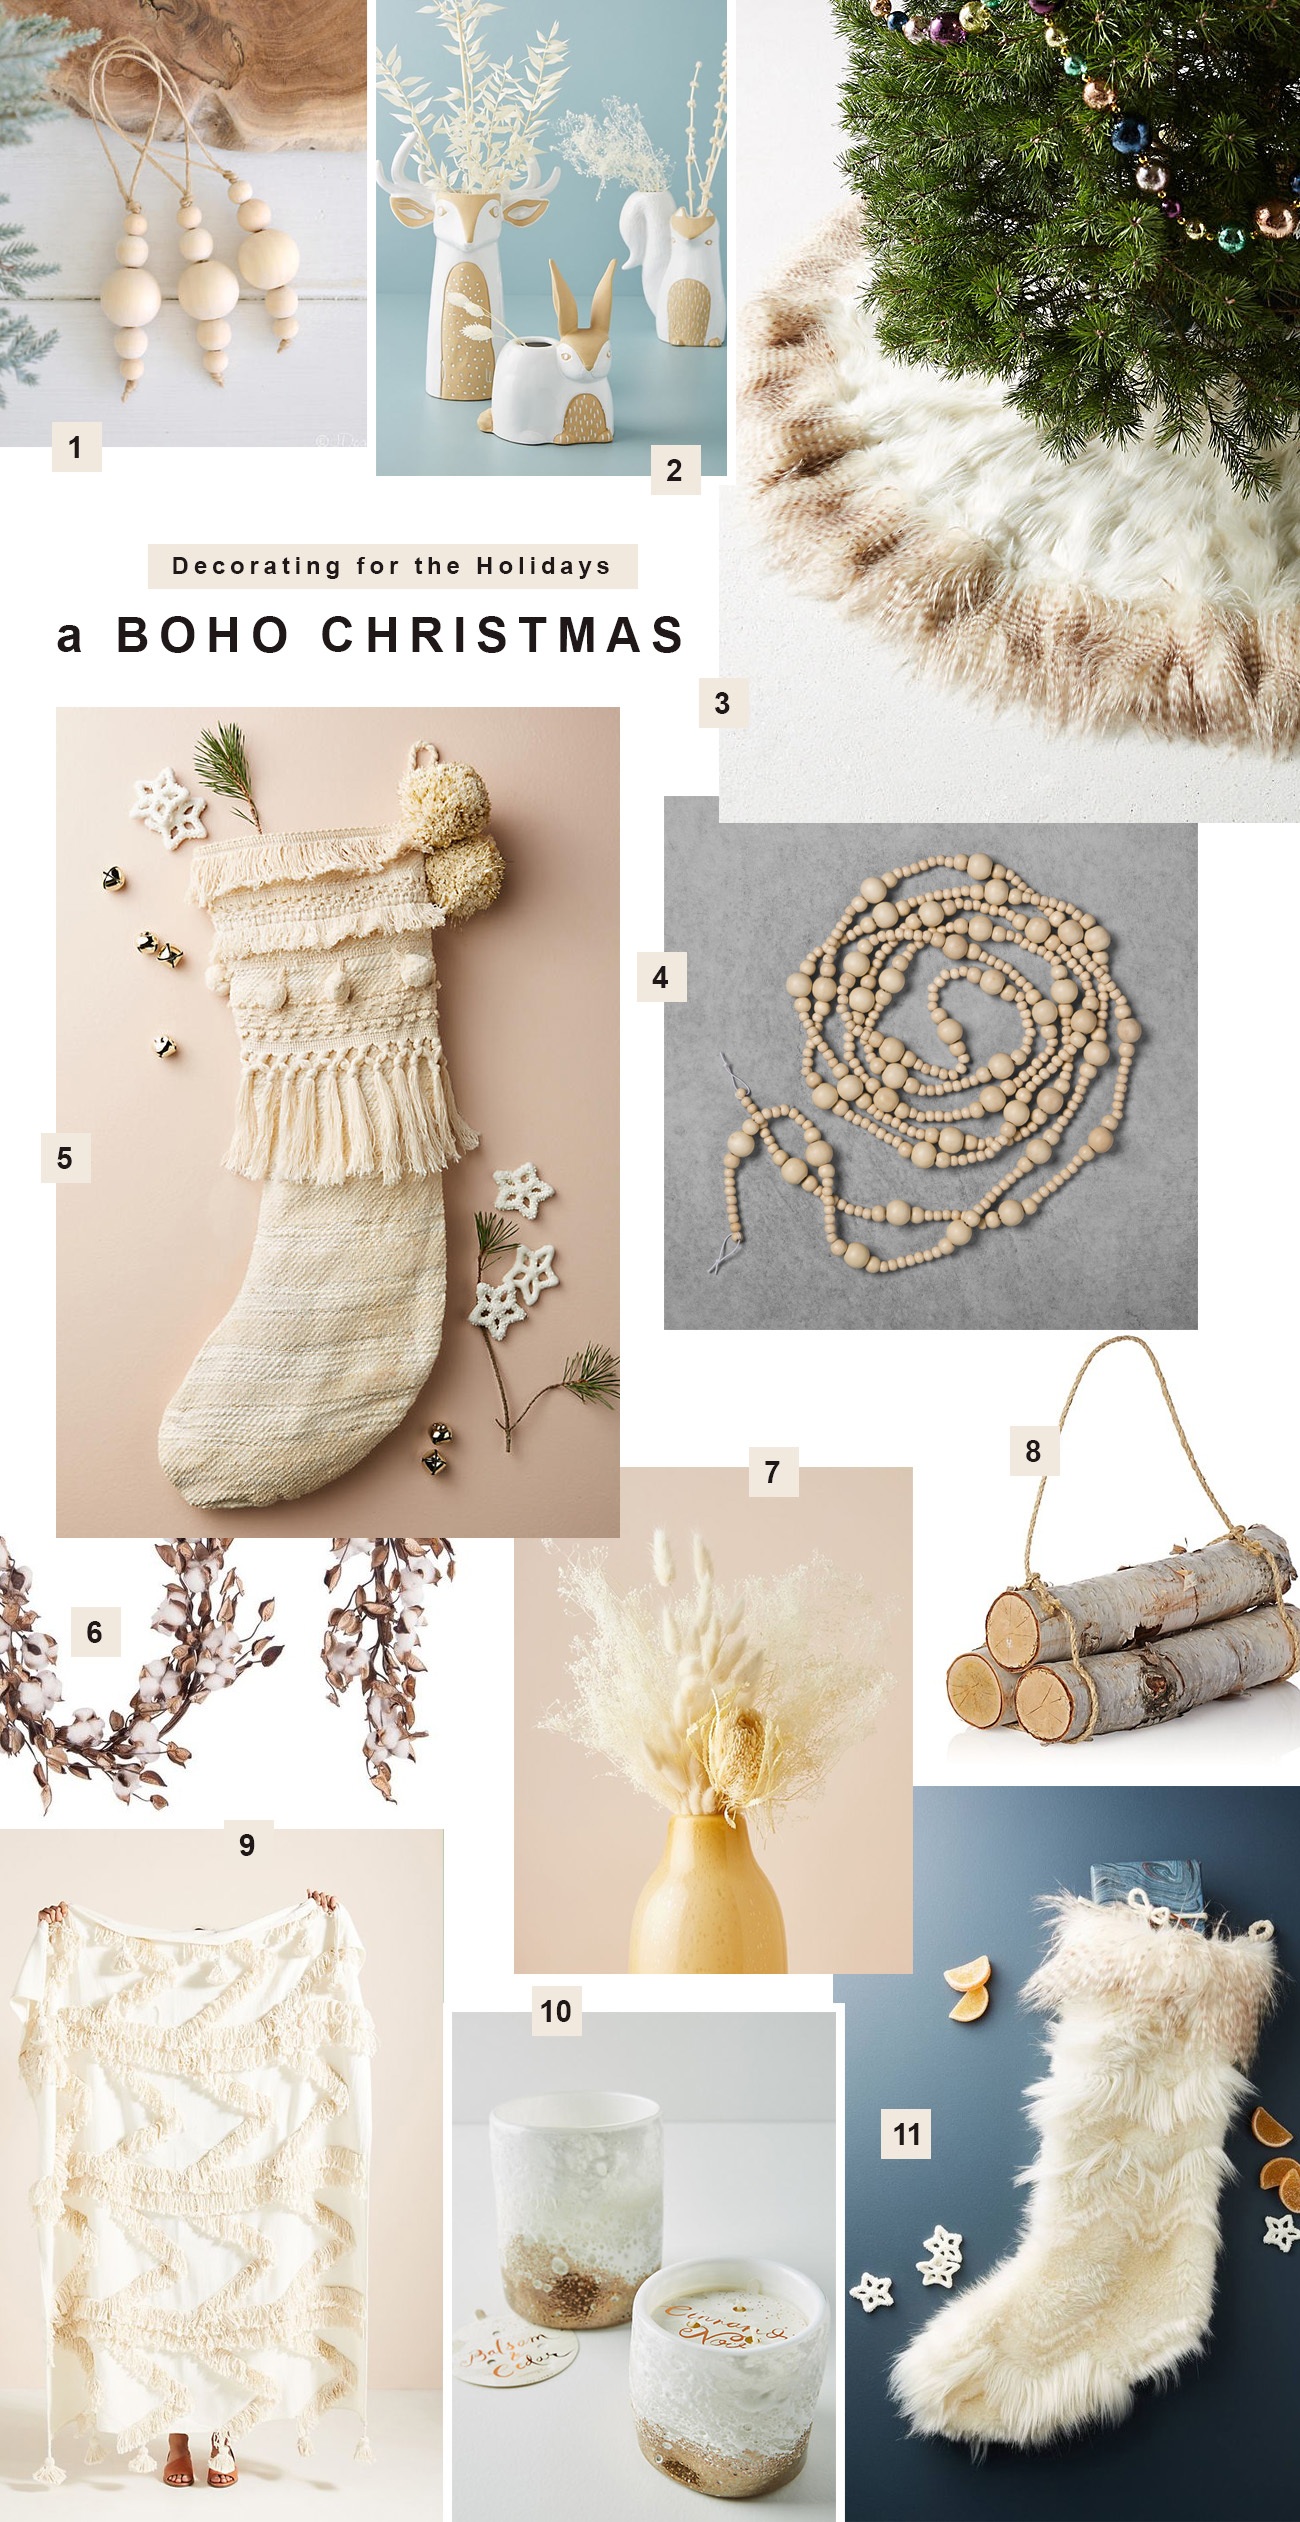 Get the Look for a Boho Christmas